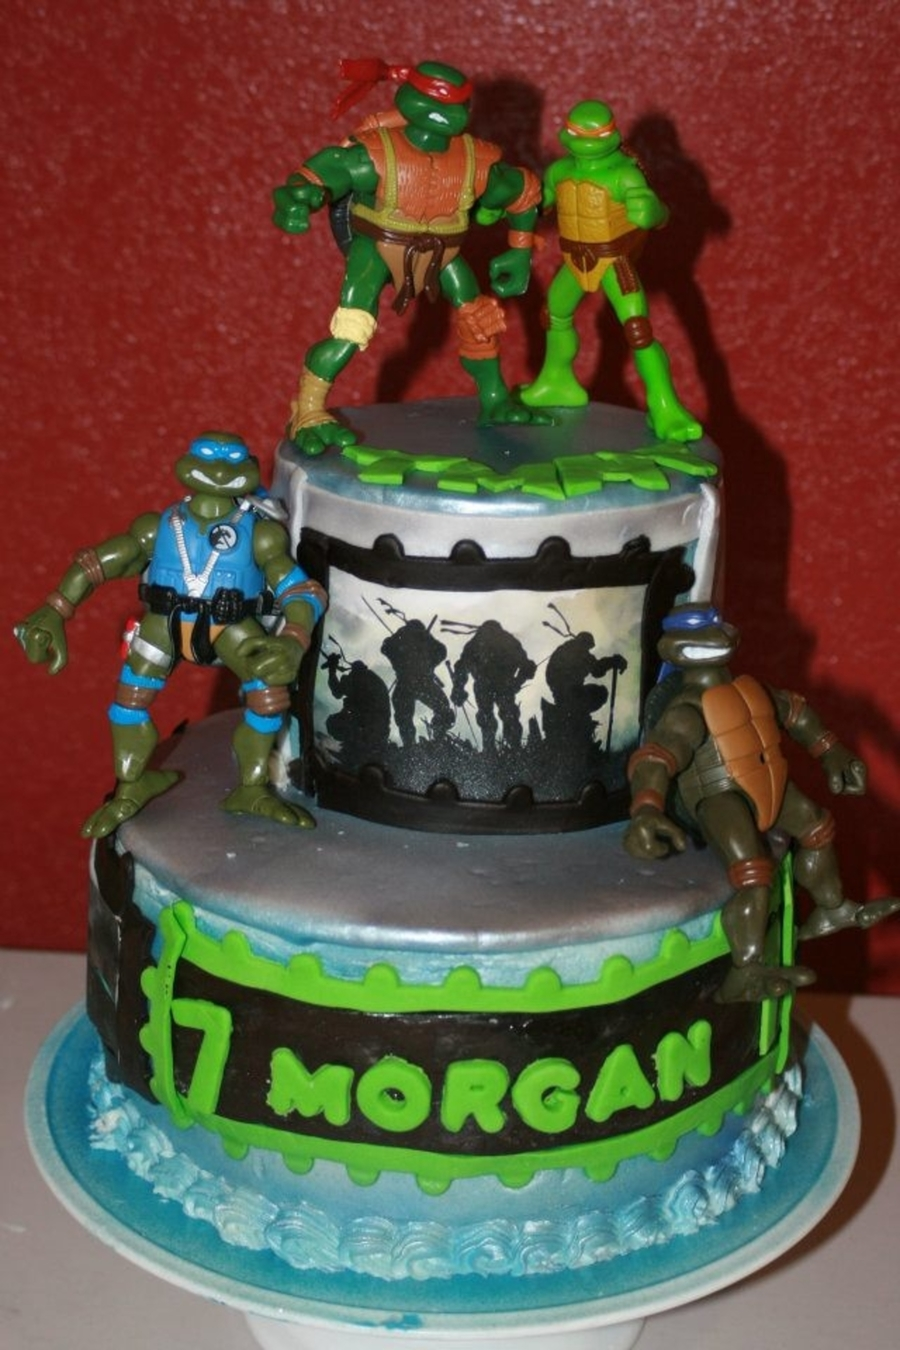 Morgan Ninja Turtles on Cake Central